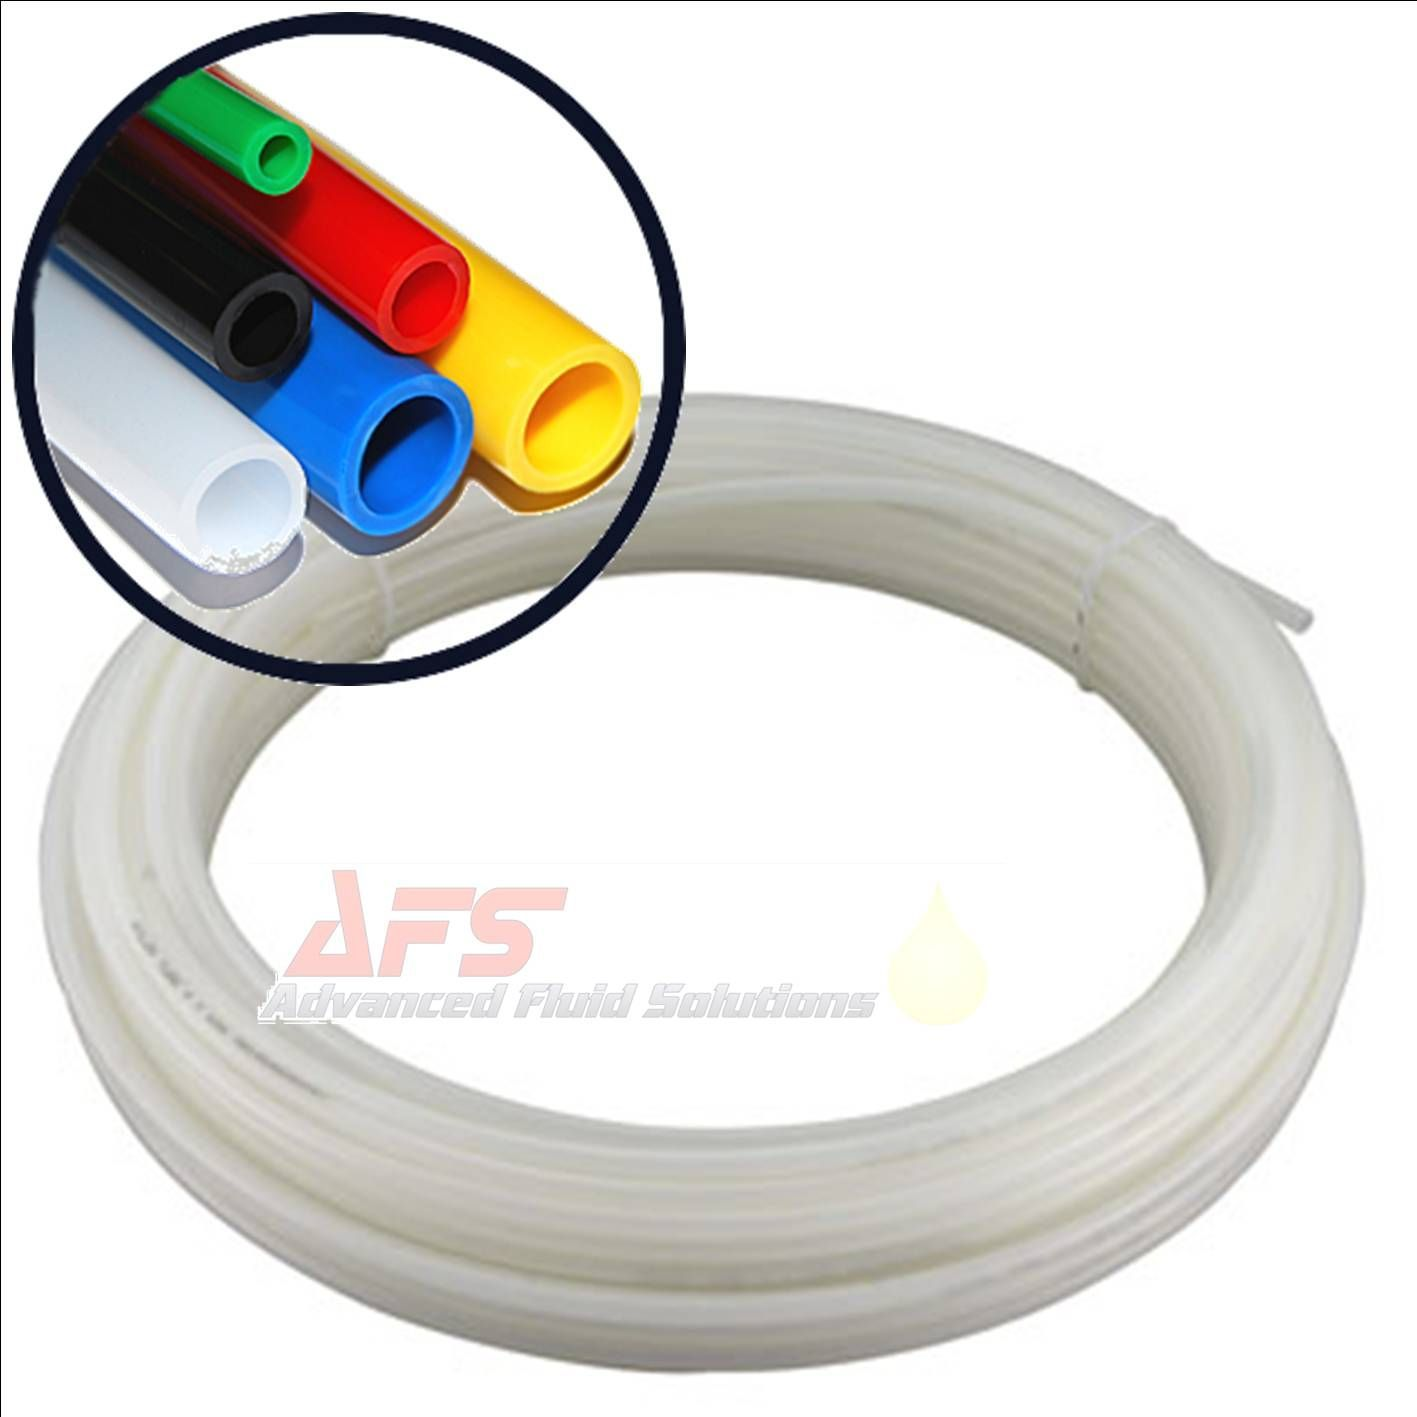 16 Inch O.D x 0.212 I.D Imperial Nylon Tube NATURAL Flexible Tubing